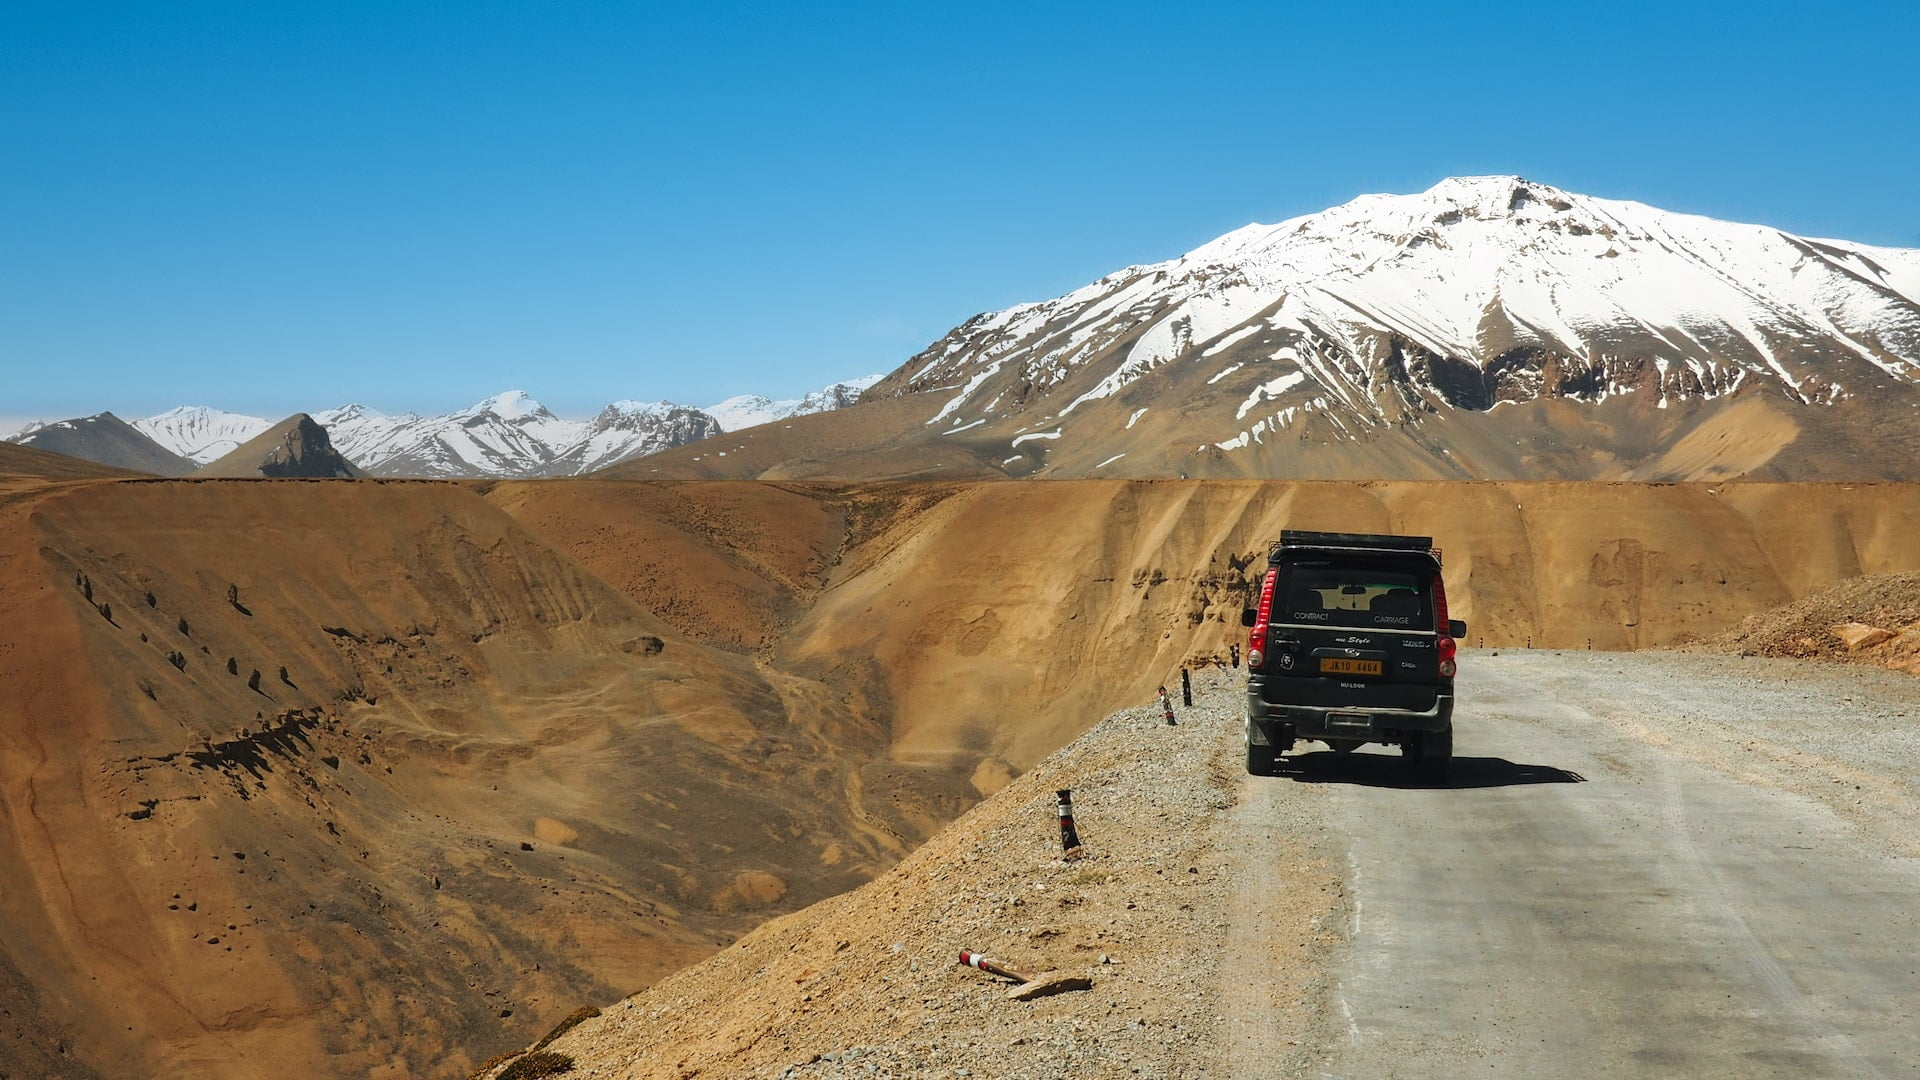 A car is parked on the side of a mountain road with a snow-capped peak in the background